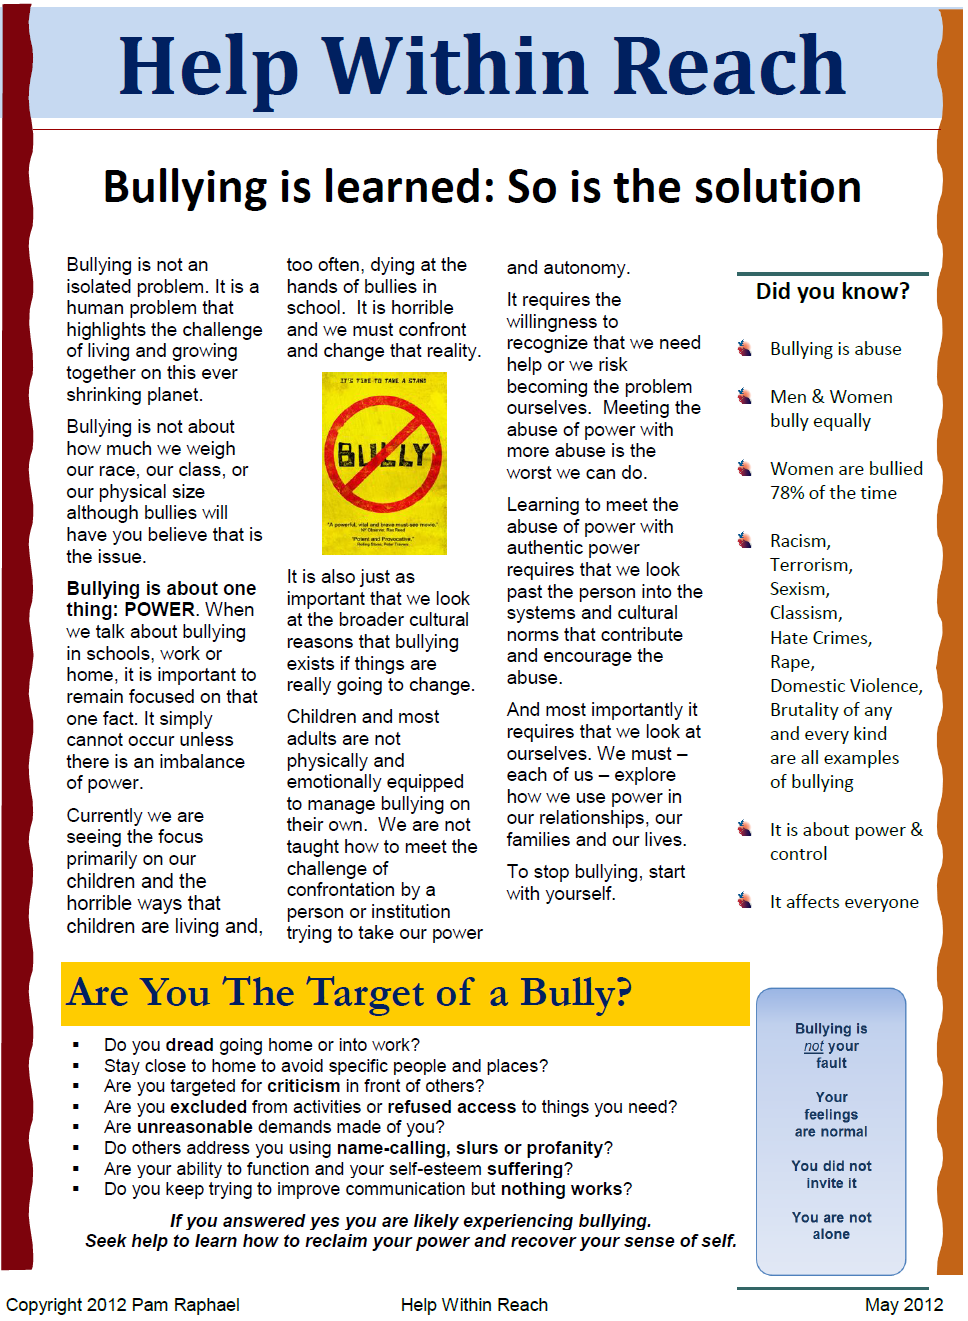 bully-page-one-v2